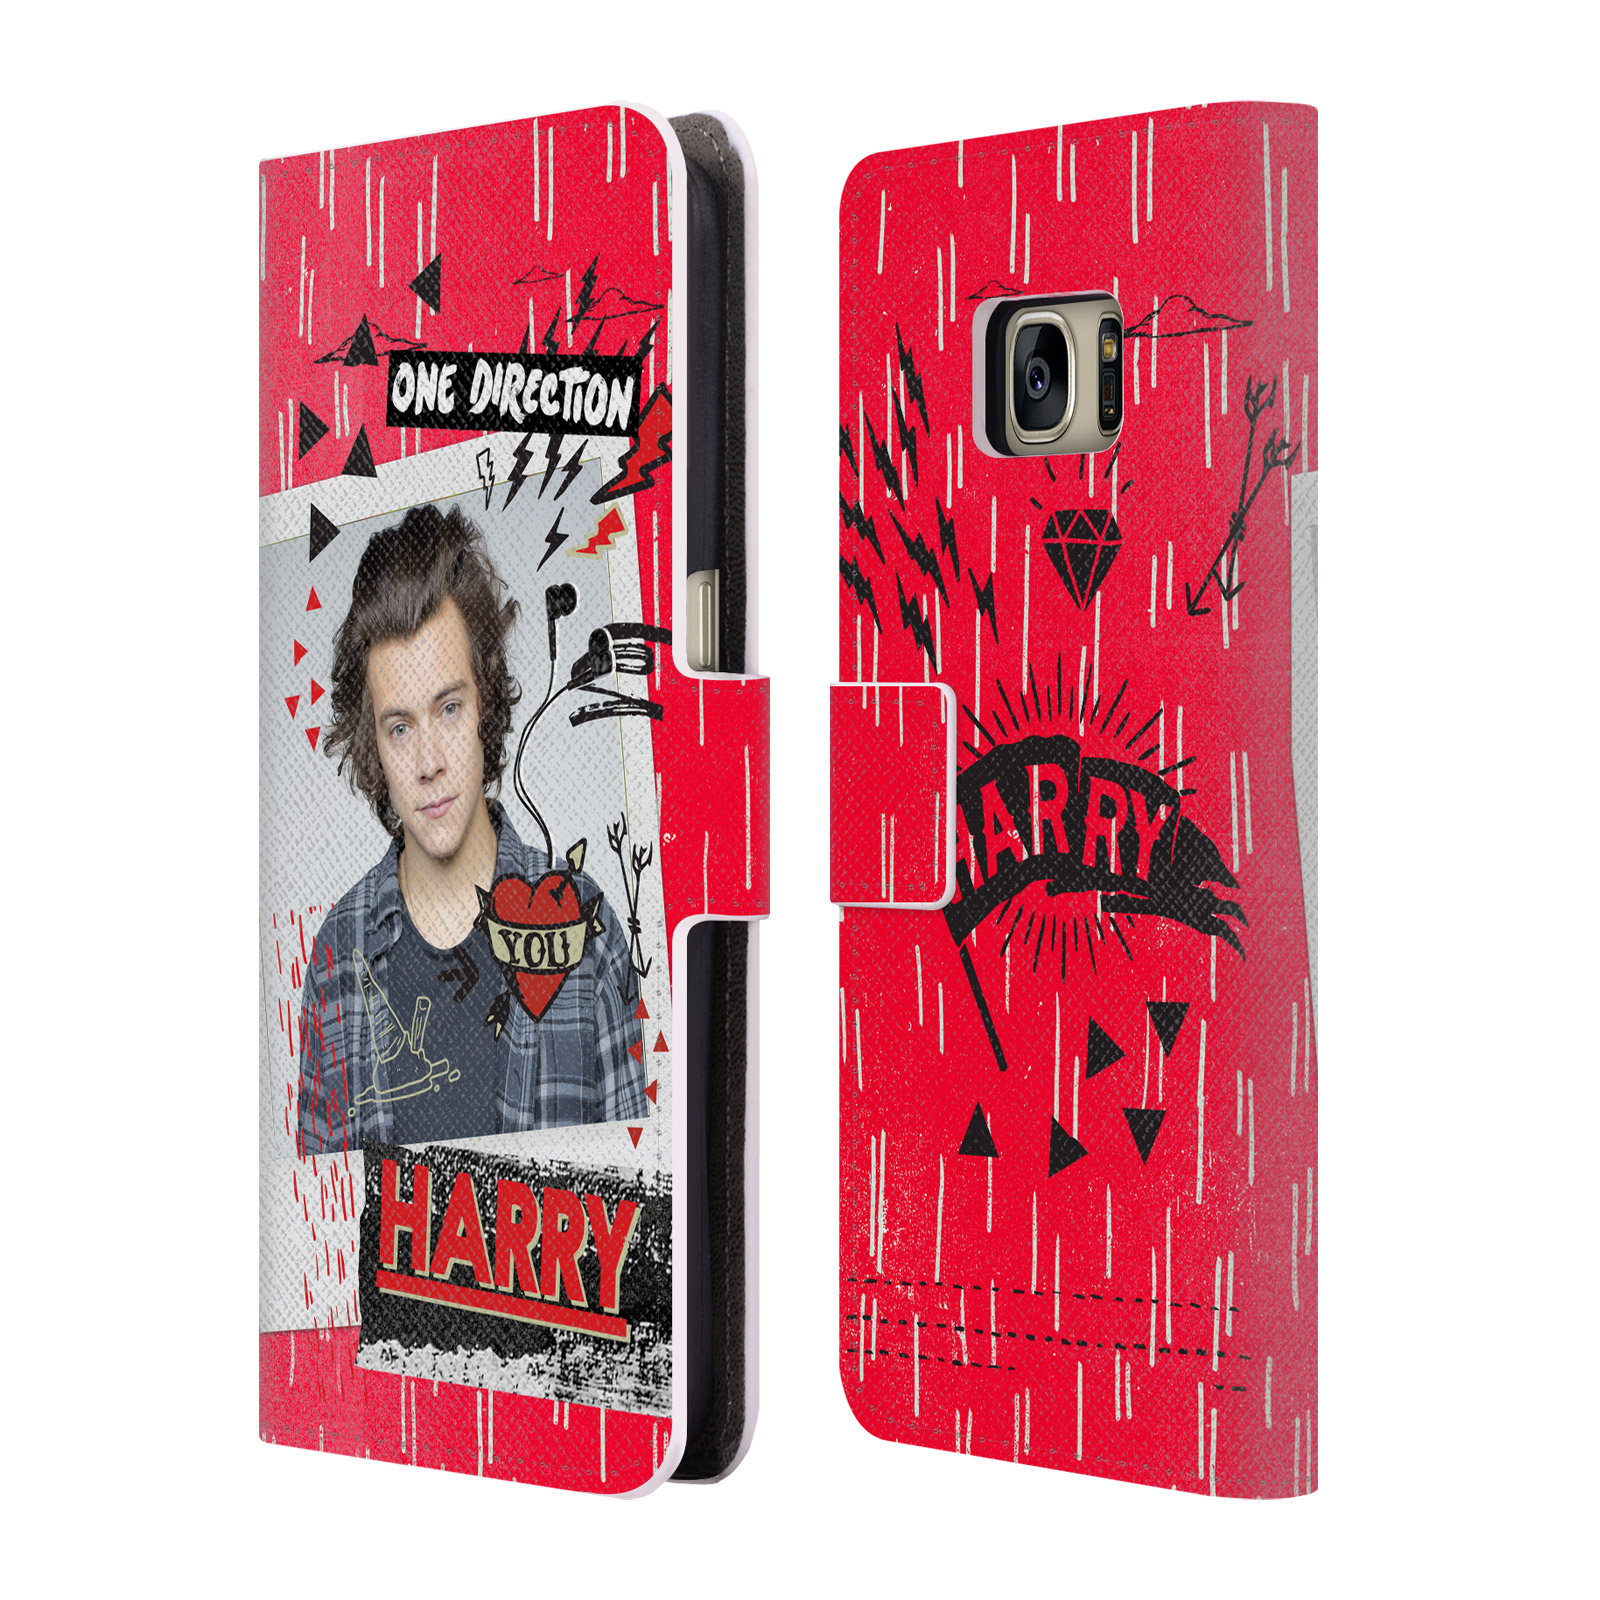 OFFICIAL ONE DIRECTION MIDNIGHT MEMORIES SHOTS HARRY LEATHER BOOK WALLET CASE COVER FOR SAMSUNG PHONES 1